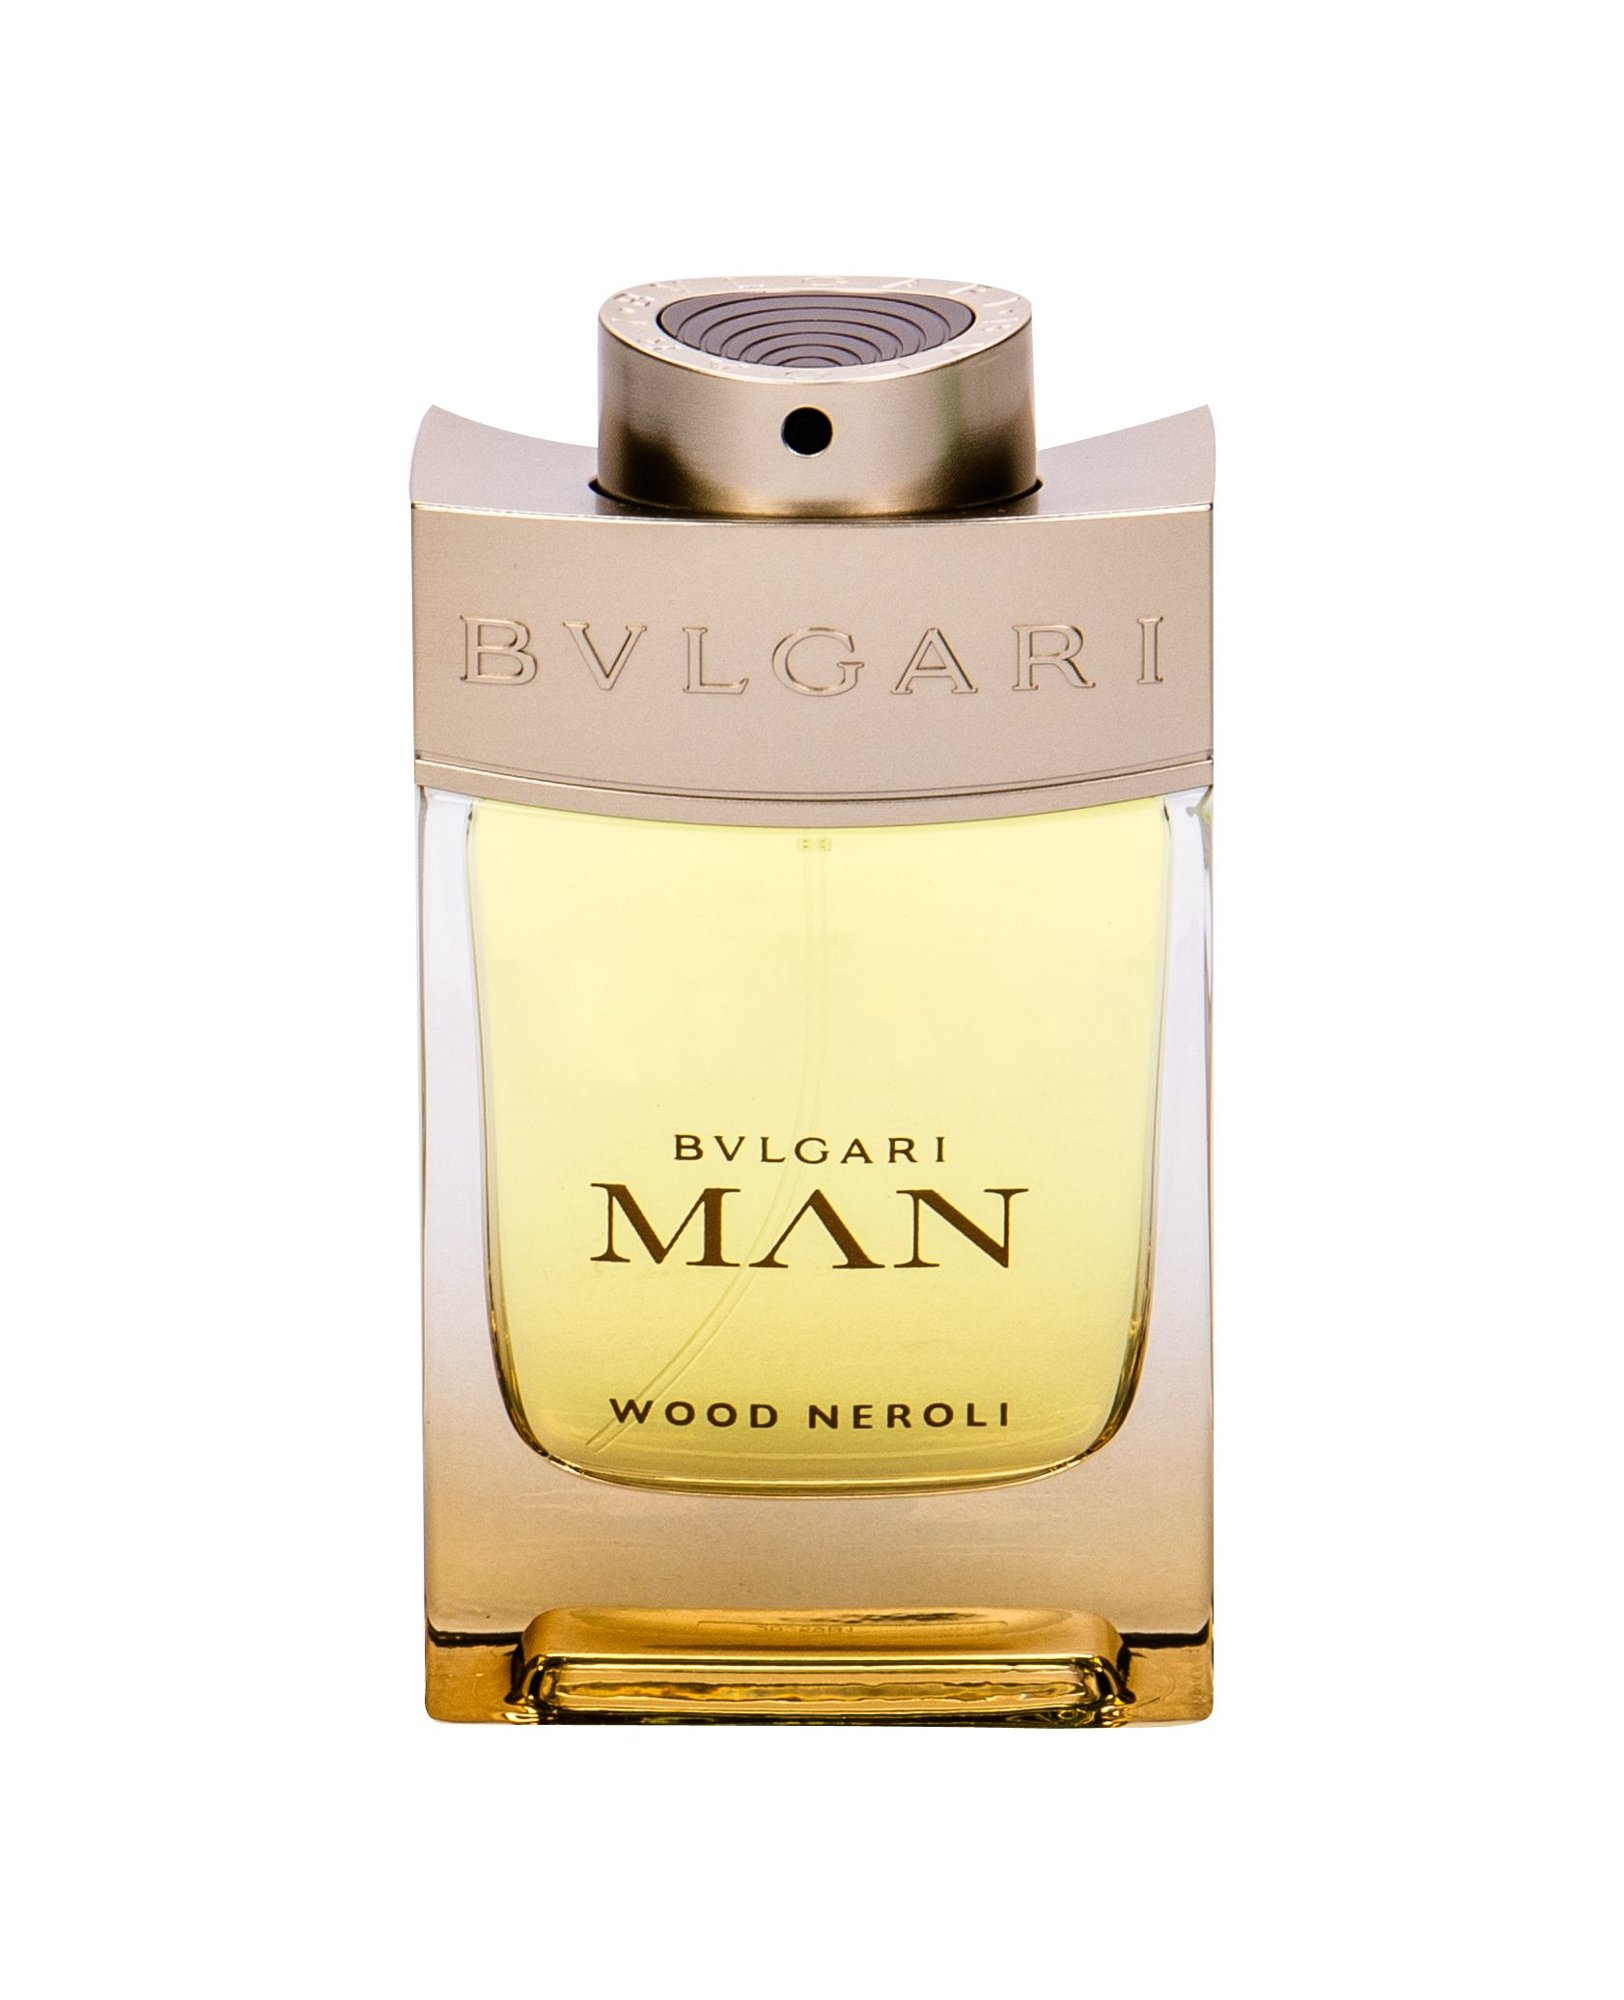 Bvlgari MAN Eau de Parfum 100ml  Wood Neroli